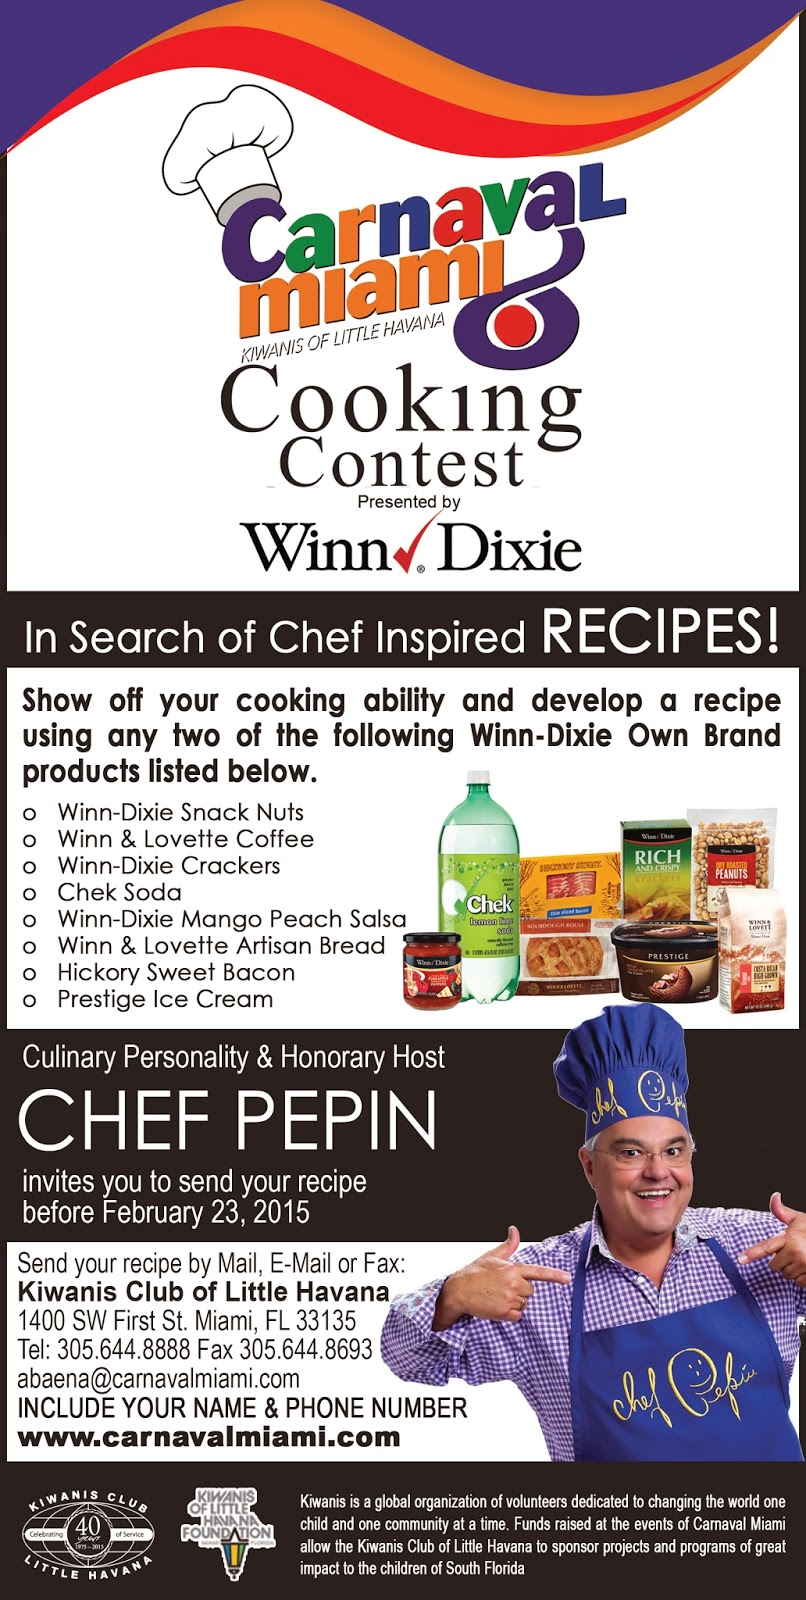 carnaval miami,cooking contest,chef pepin,winn dixie